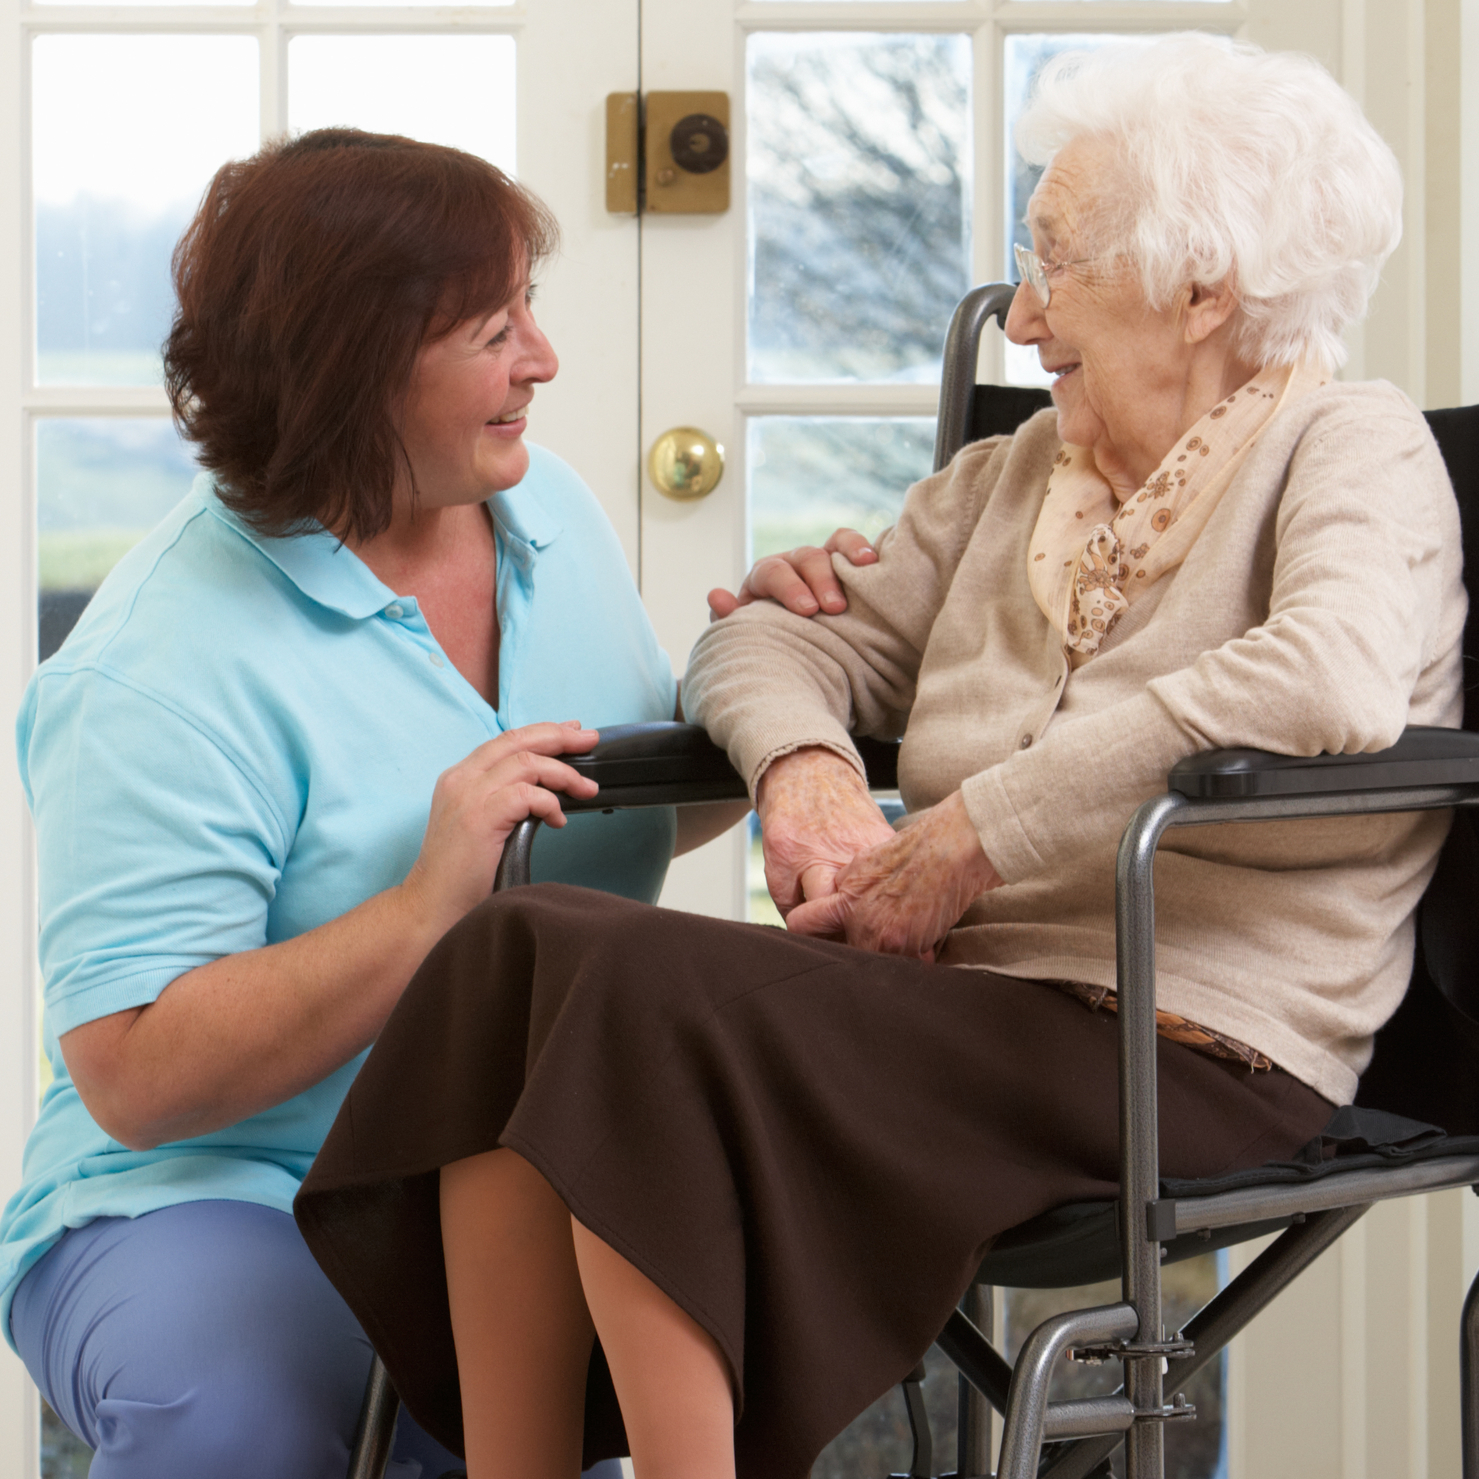 Elderly woman in wheelchair speaking with caregiver